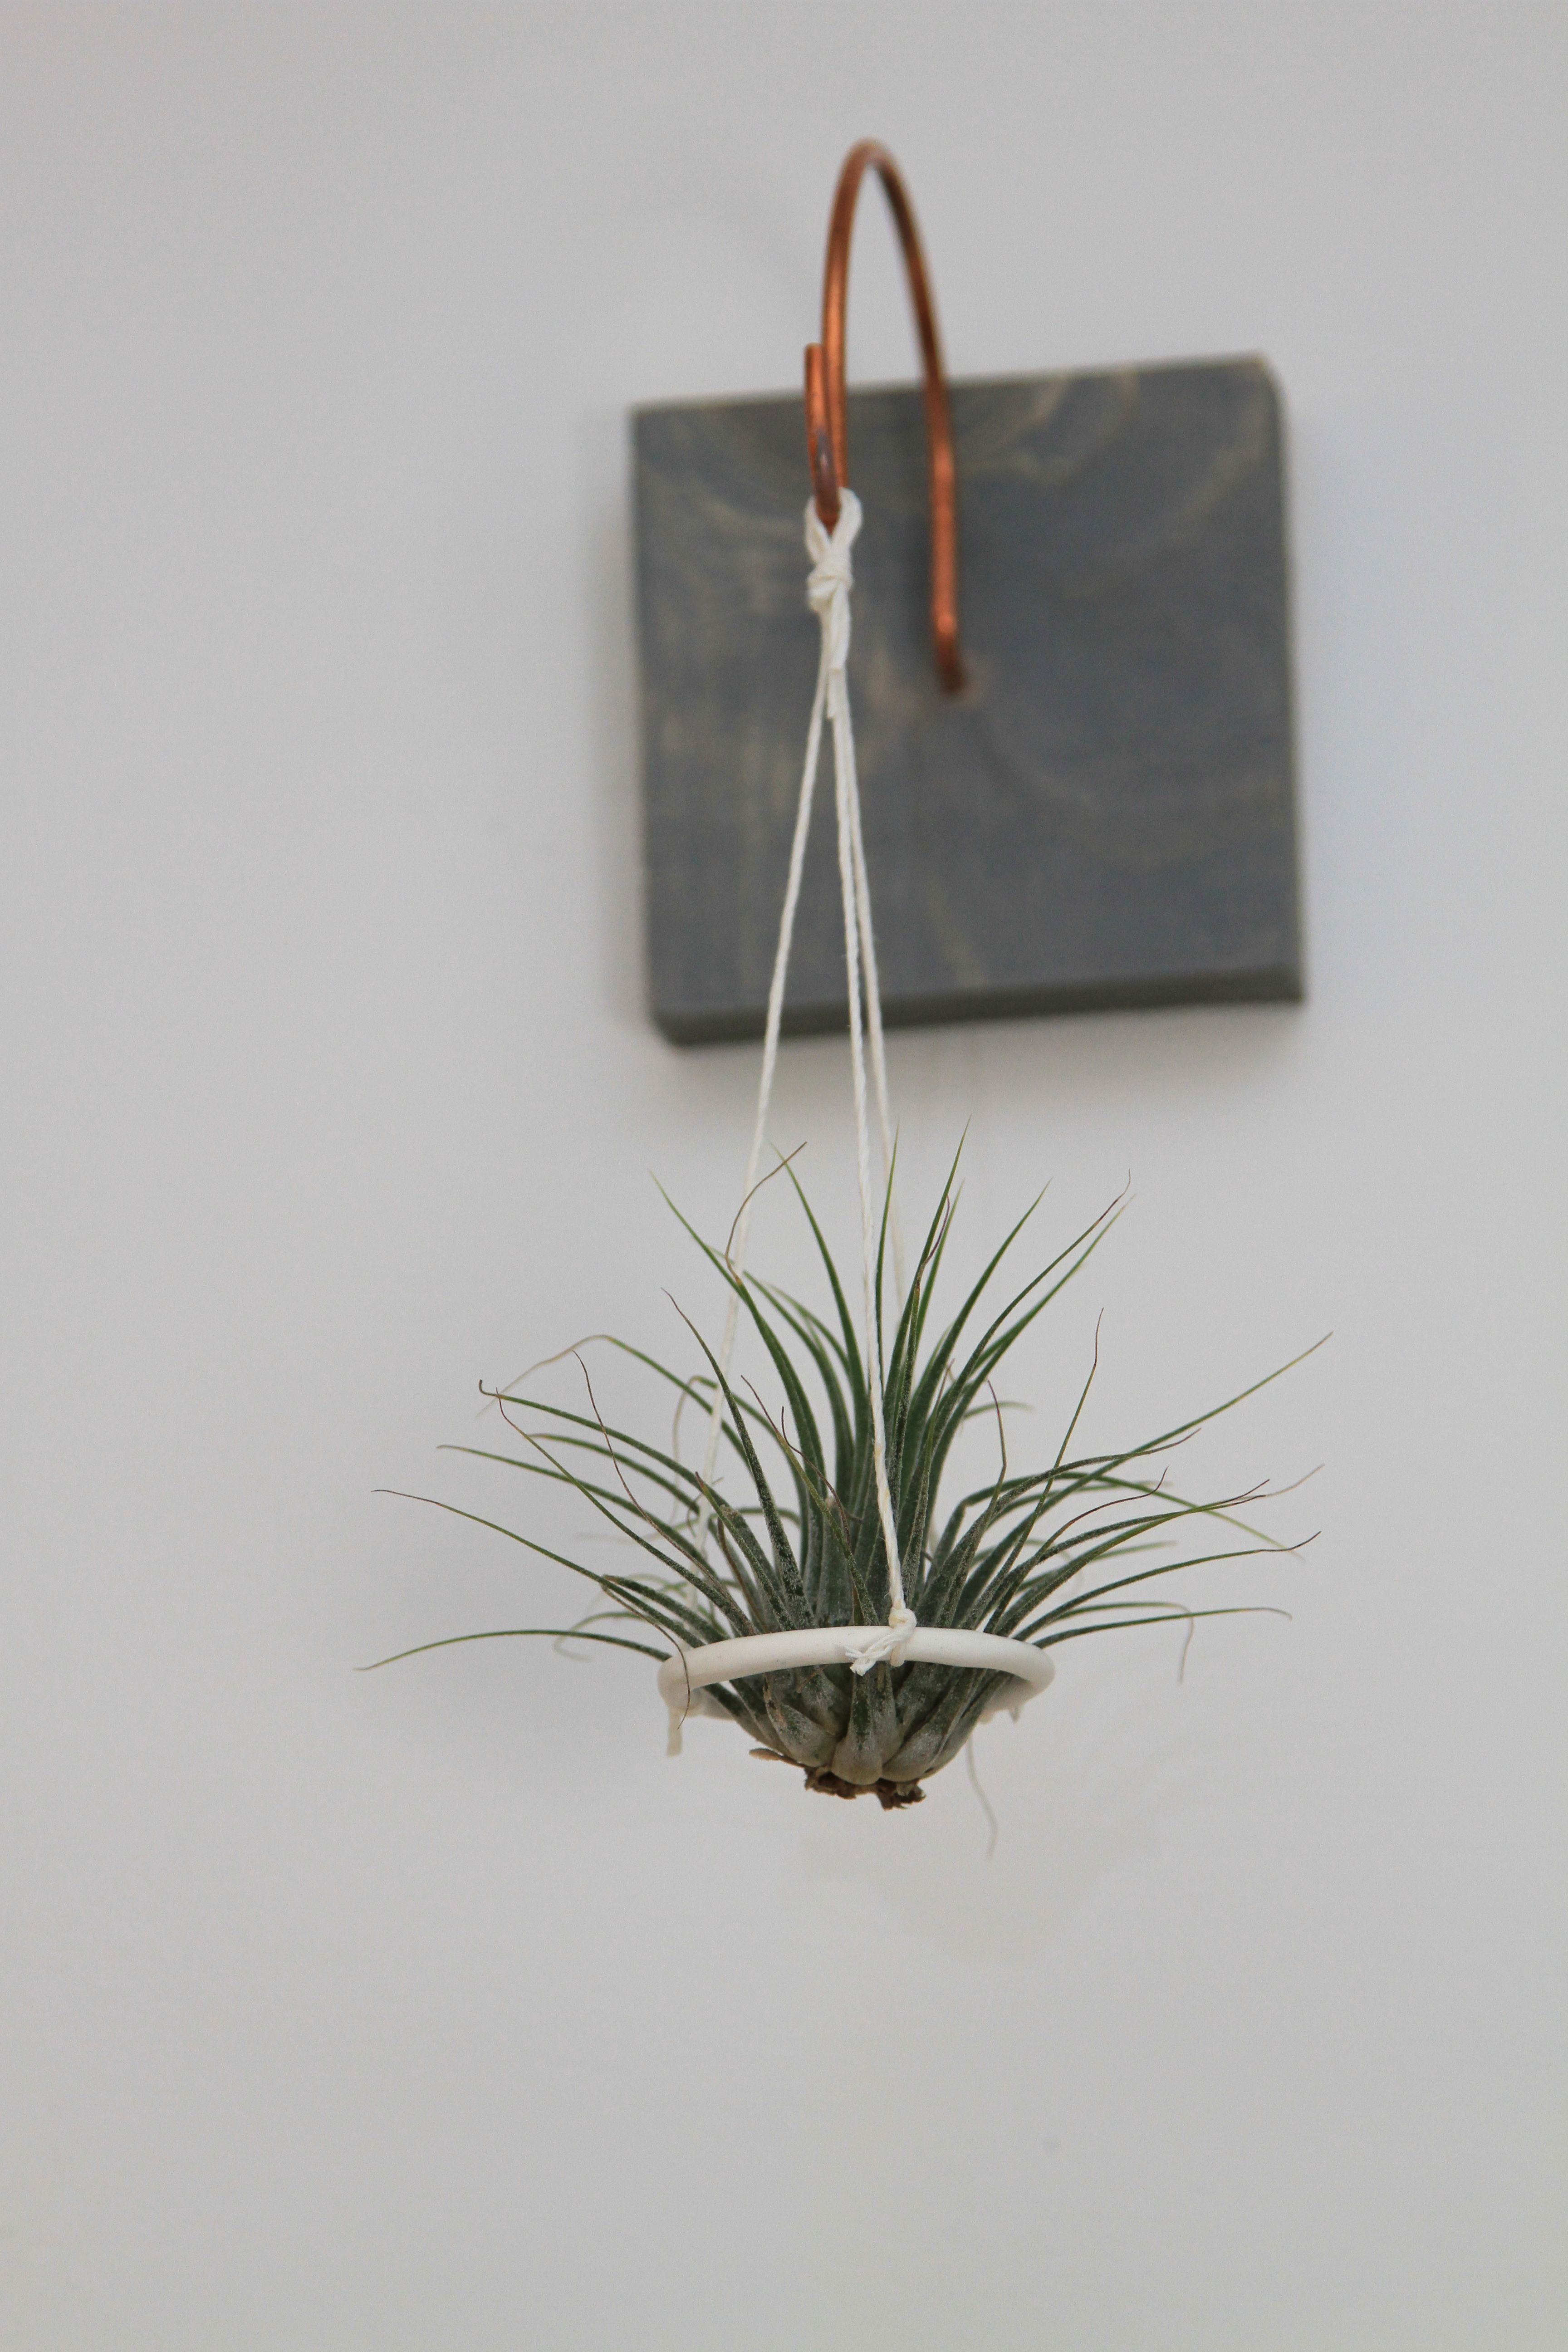 Hanging Air Plant Disc by Gems of the Soil. Hanging